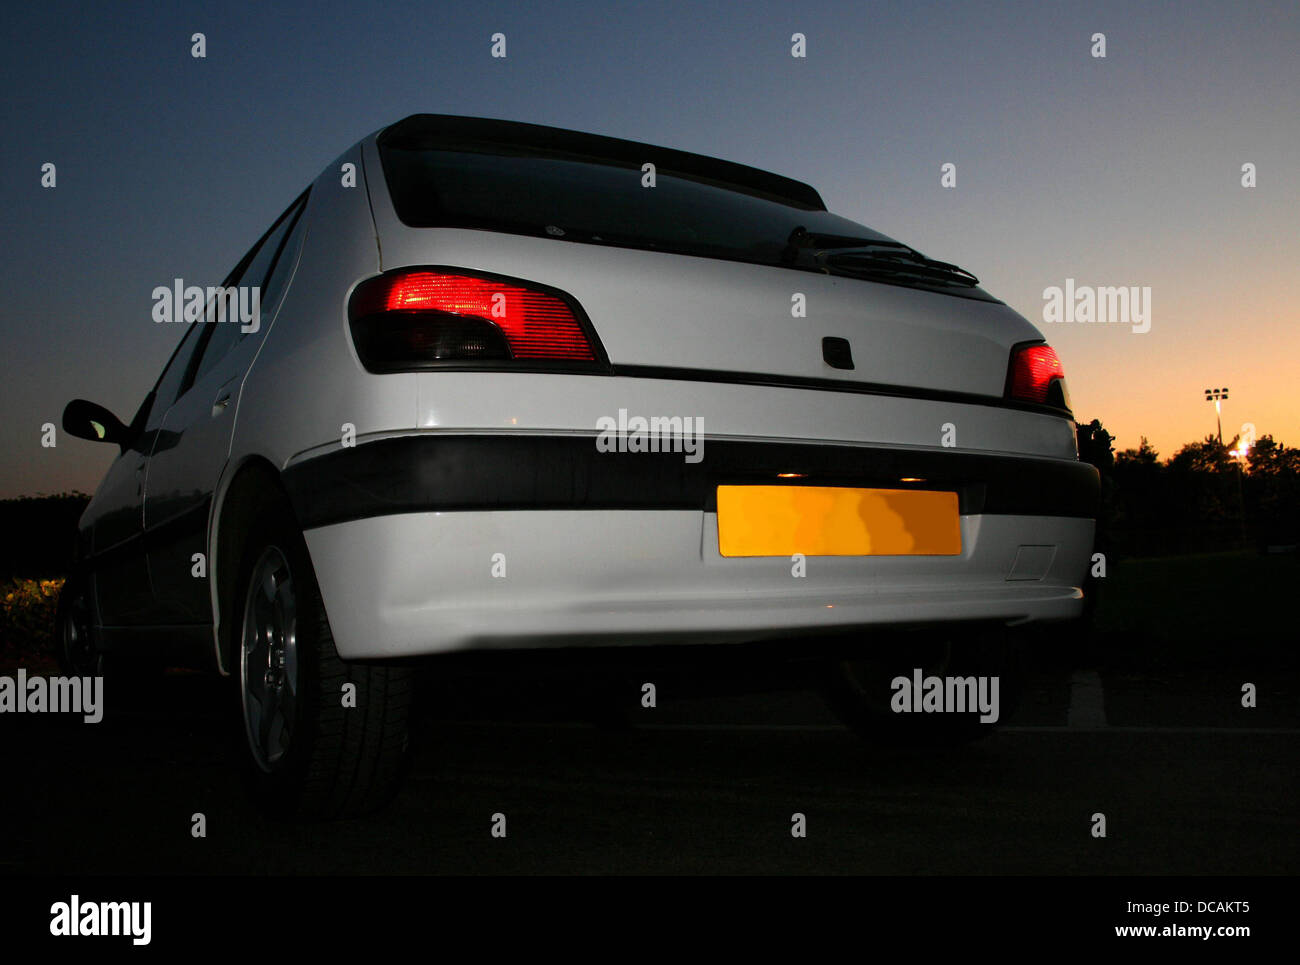 White Hatchback in sunset - Stock Image